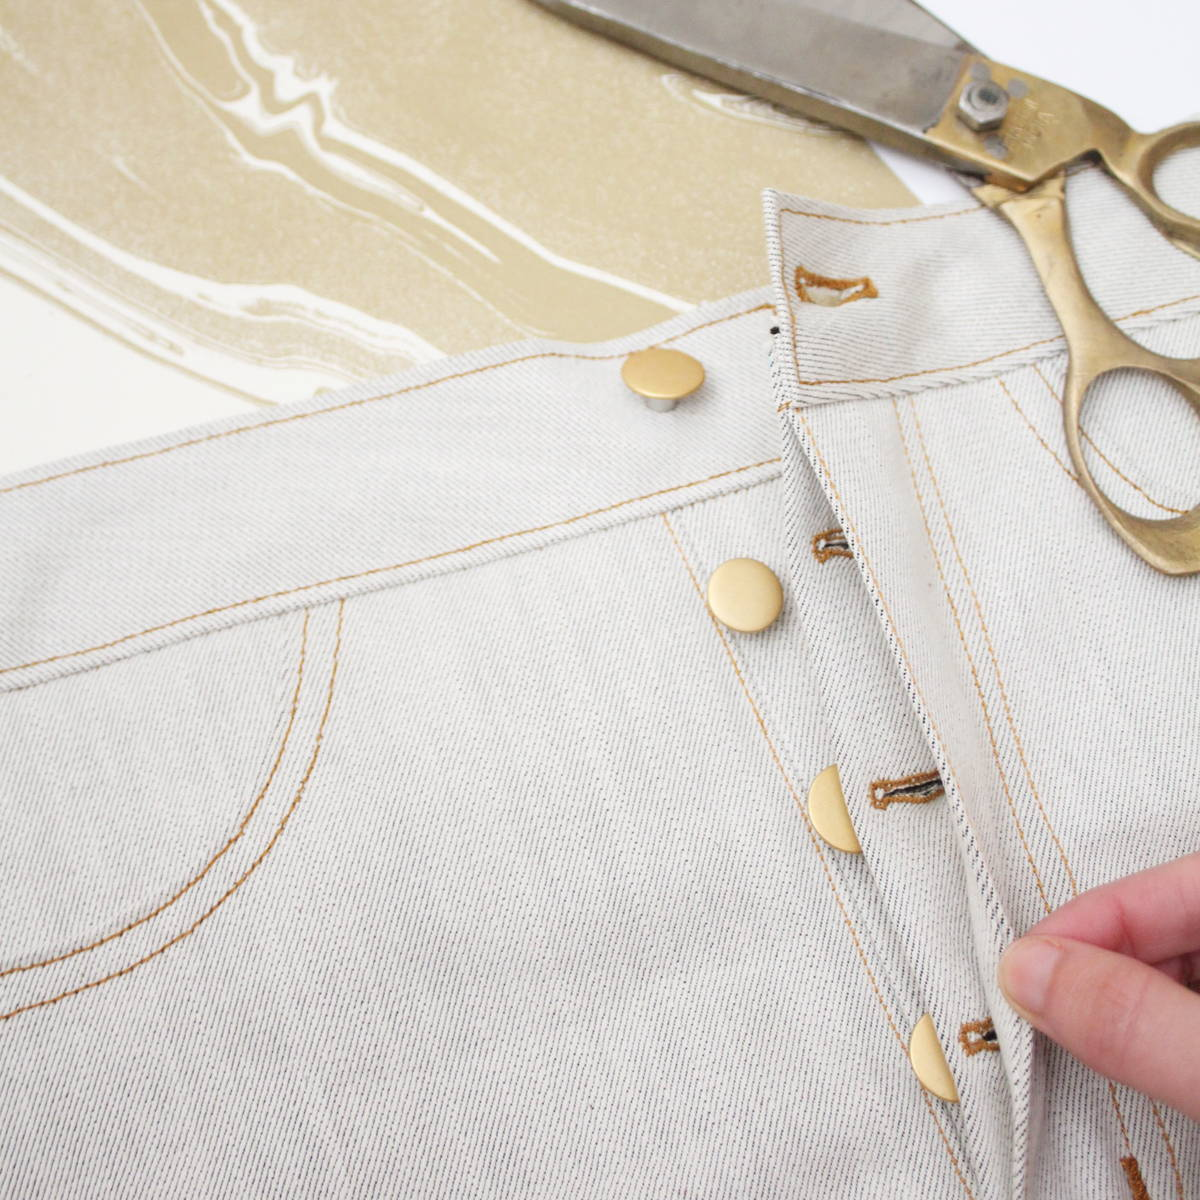 How to sew a button fly